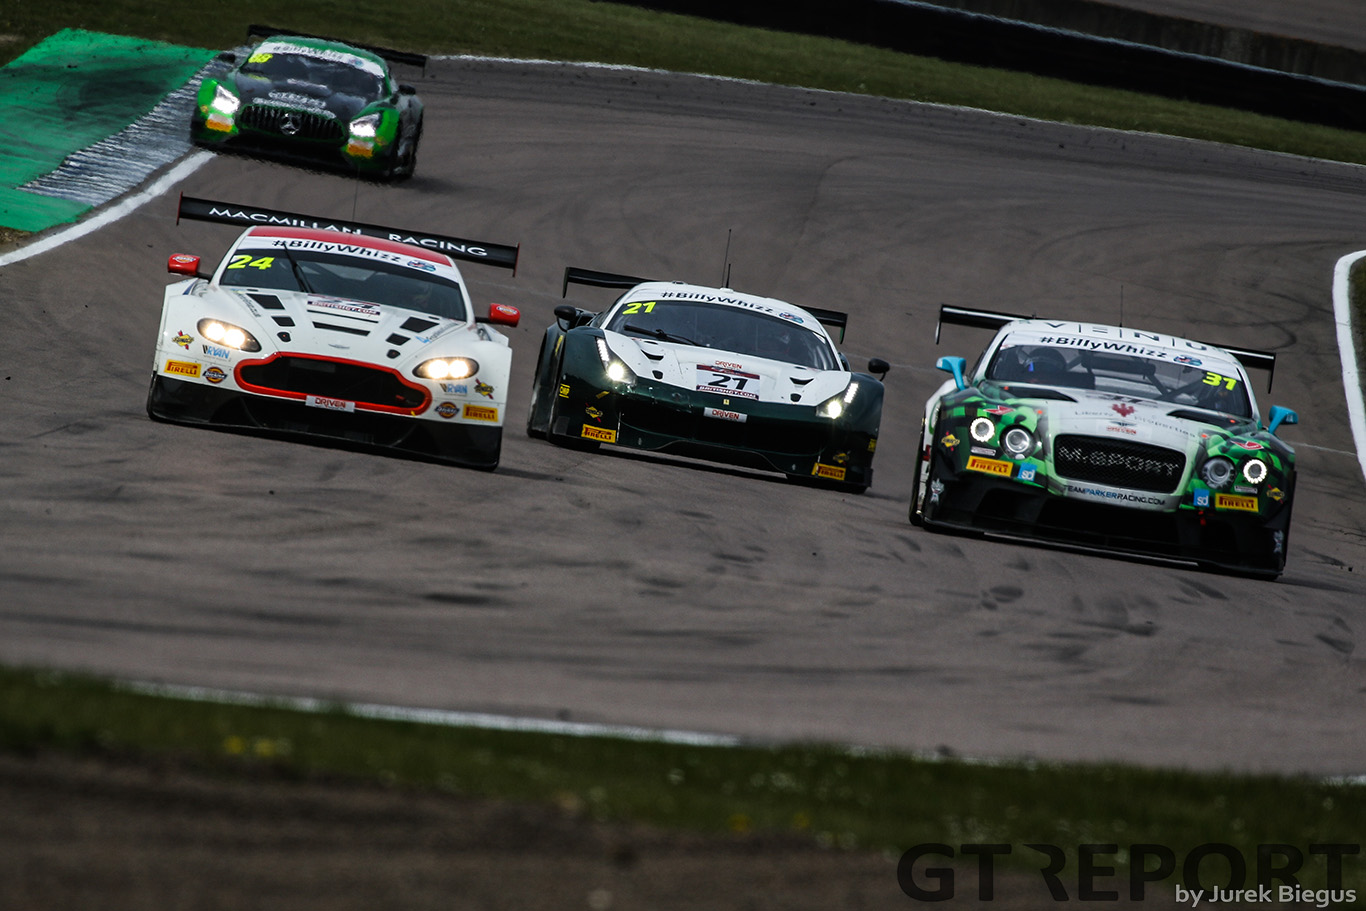 Macmillan AMR | Aston Martin Vantage GT3 | Jack Mitchell | James Littlejohn | Team Parker Racing | Bentley Continental GT3 | Rick Parfitt | Seb Morris | Spirit of Race | Ferrari 488 GT3 | Duncan Cameron | Matt Griffin | British GT Championship | Rockingham Motor Speedway | 30 April 2017 | Photo: Jurek Biegus